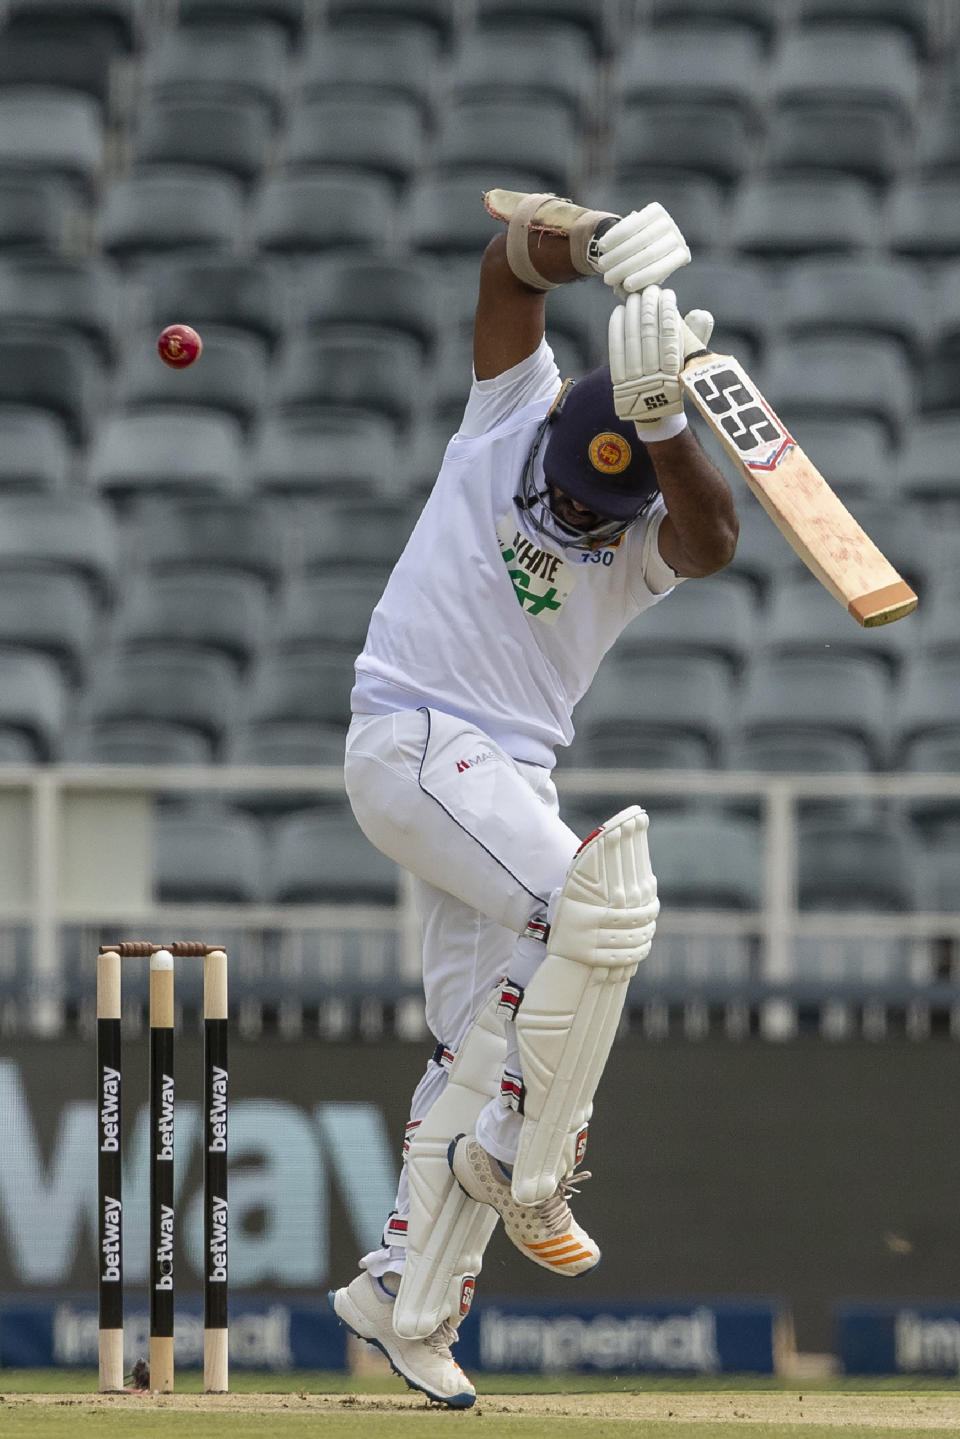 CORRECTS BATSMAN'S NAME - Sri Lanka's batsman Kusal Perera evades a rising delivery South Africa's bowler Anrich Nortje during the 2nd Test cricket match between South Africa and Sri Lanka in Johannesburg, South Africa, Sunday, Jan. 3, 2021. (AP Photo/Themba Hadebe)